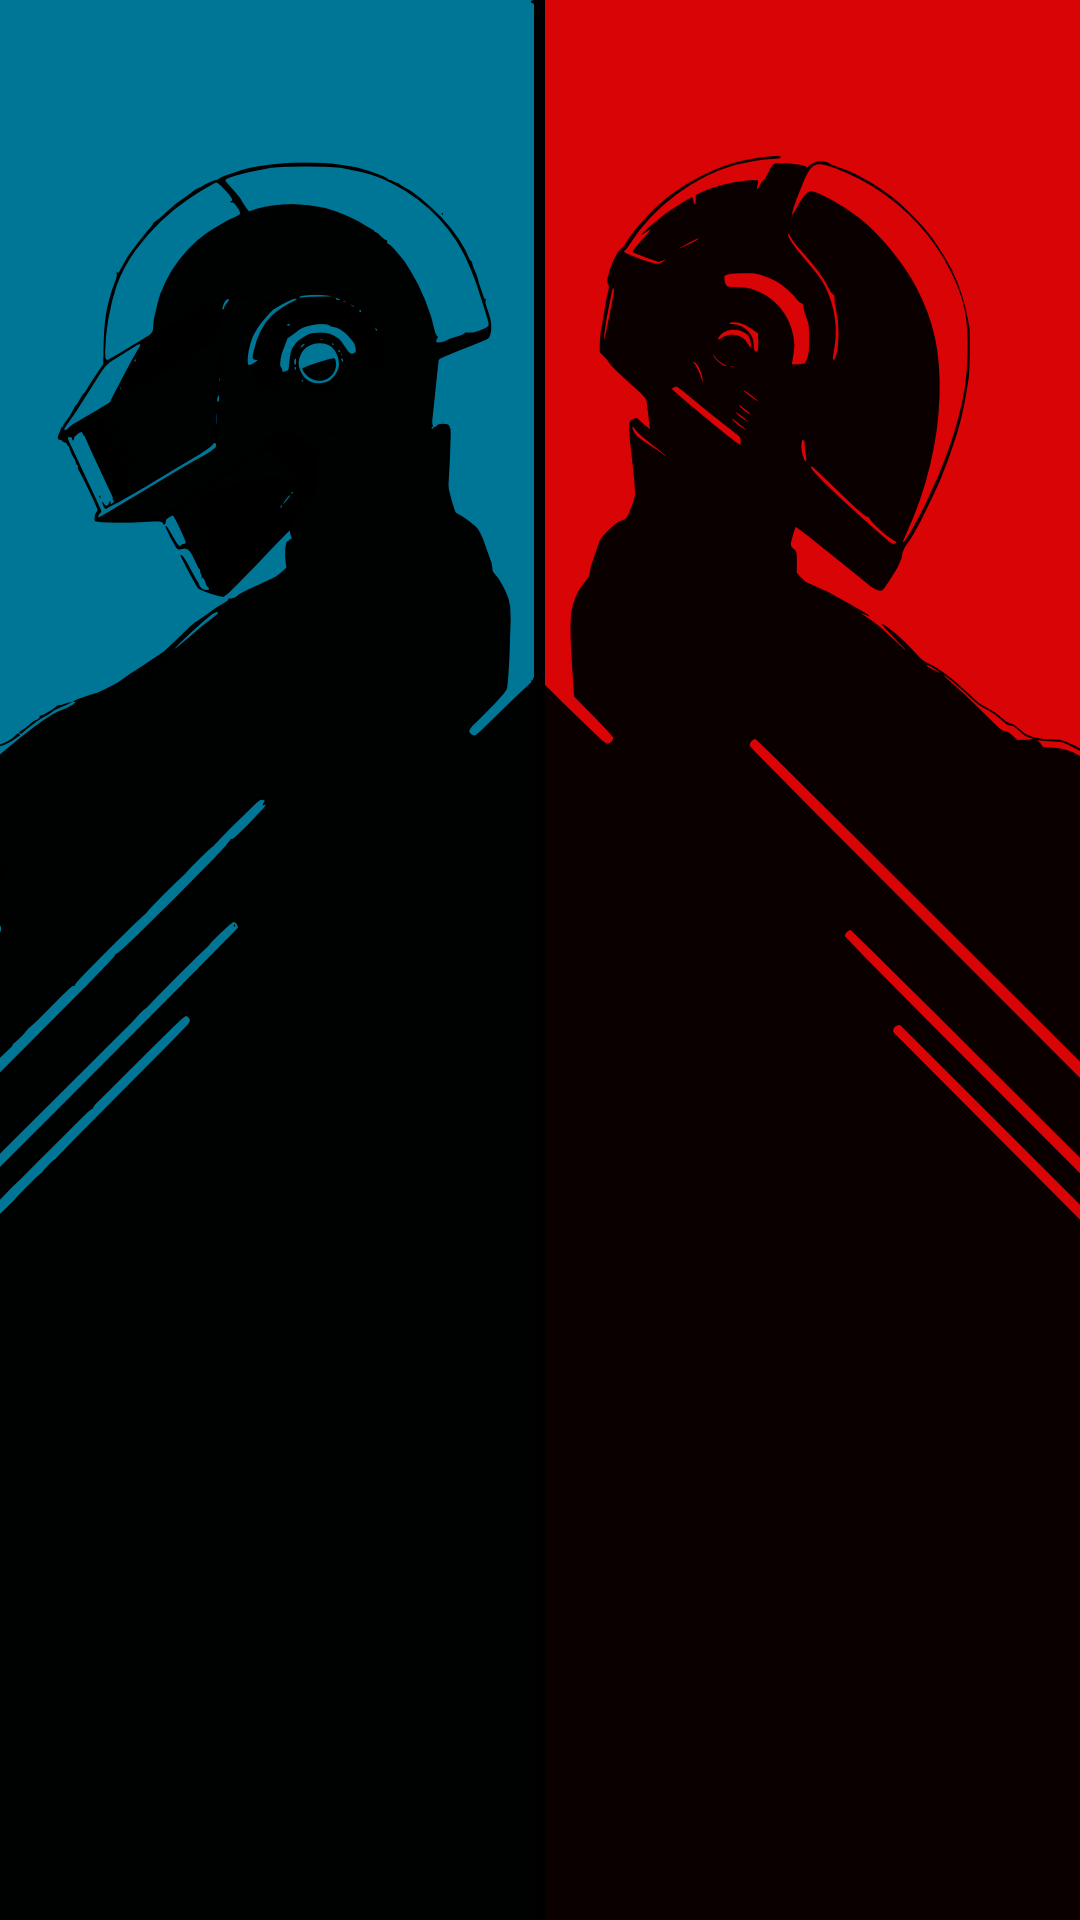 sony-xperia-z1-1080x1920-mobile-wallpapers-daft-punk.png